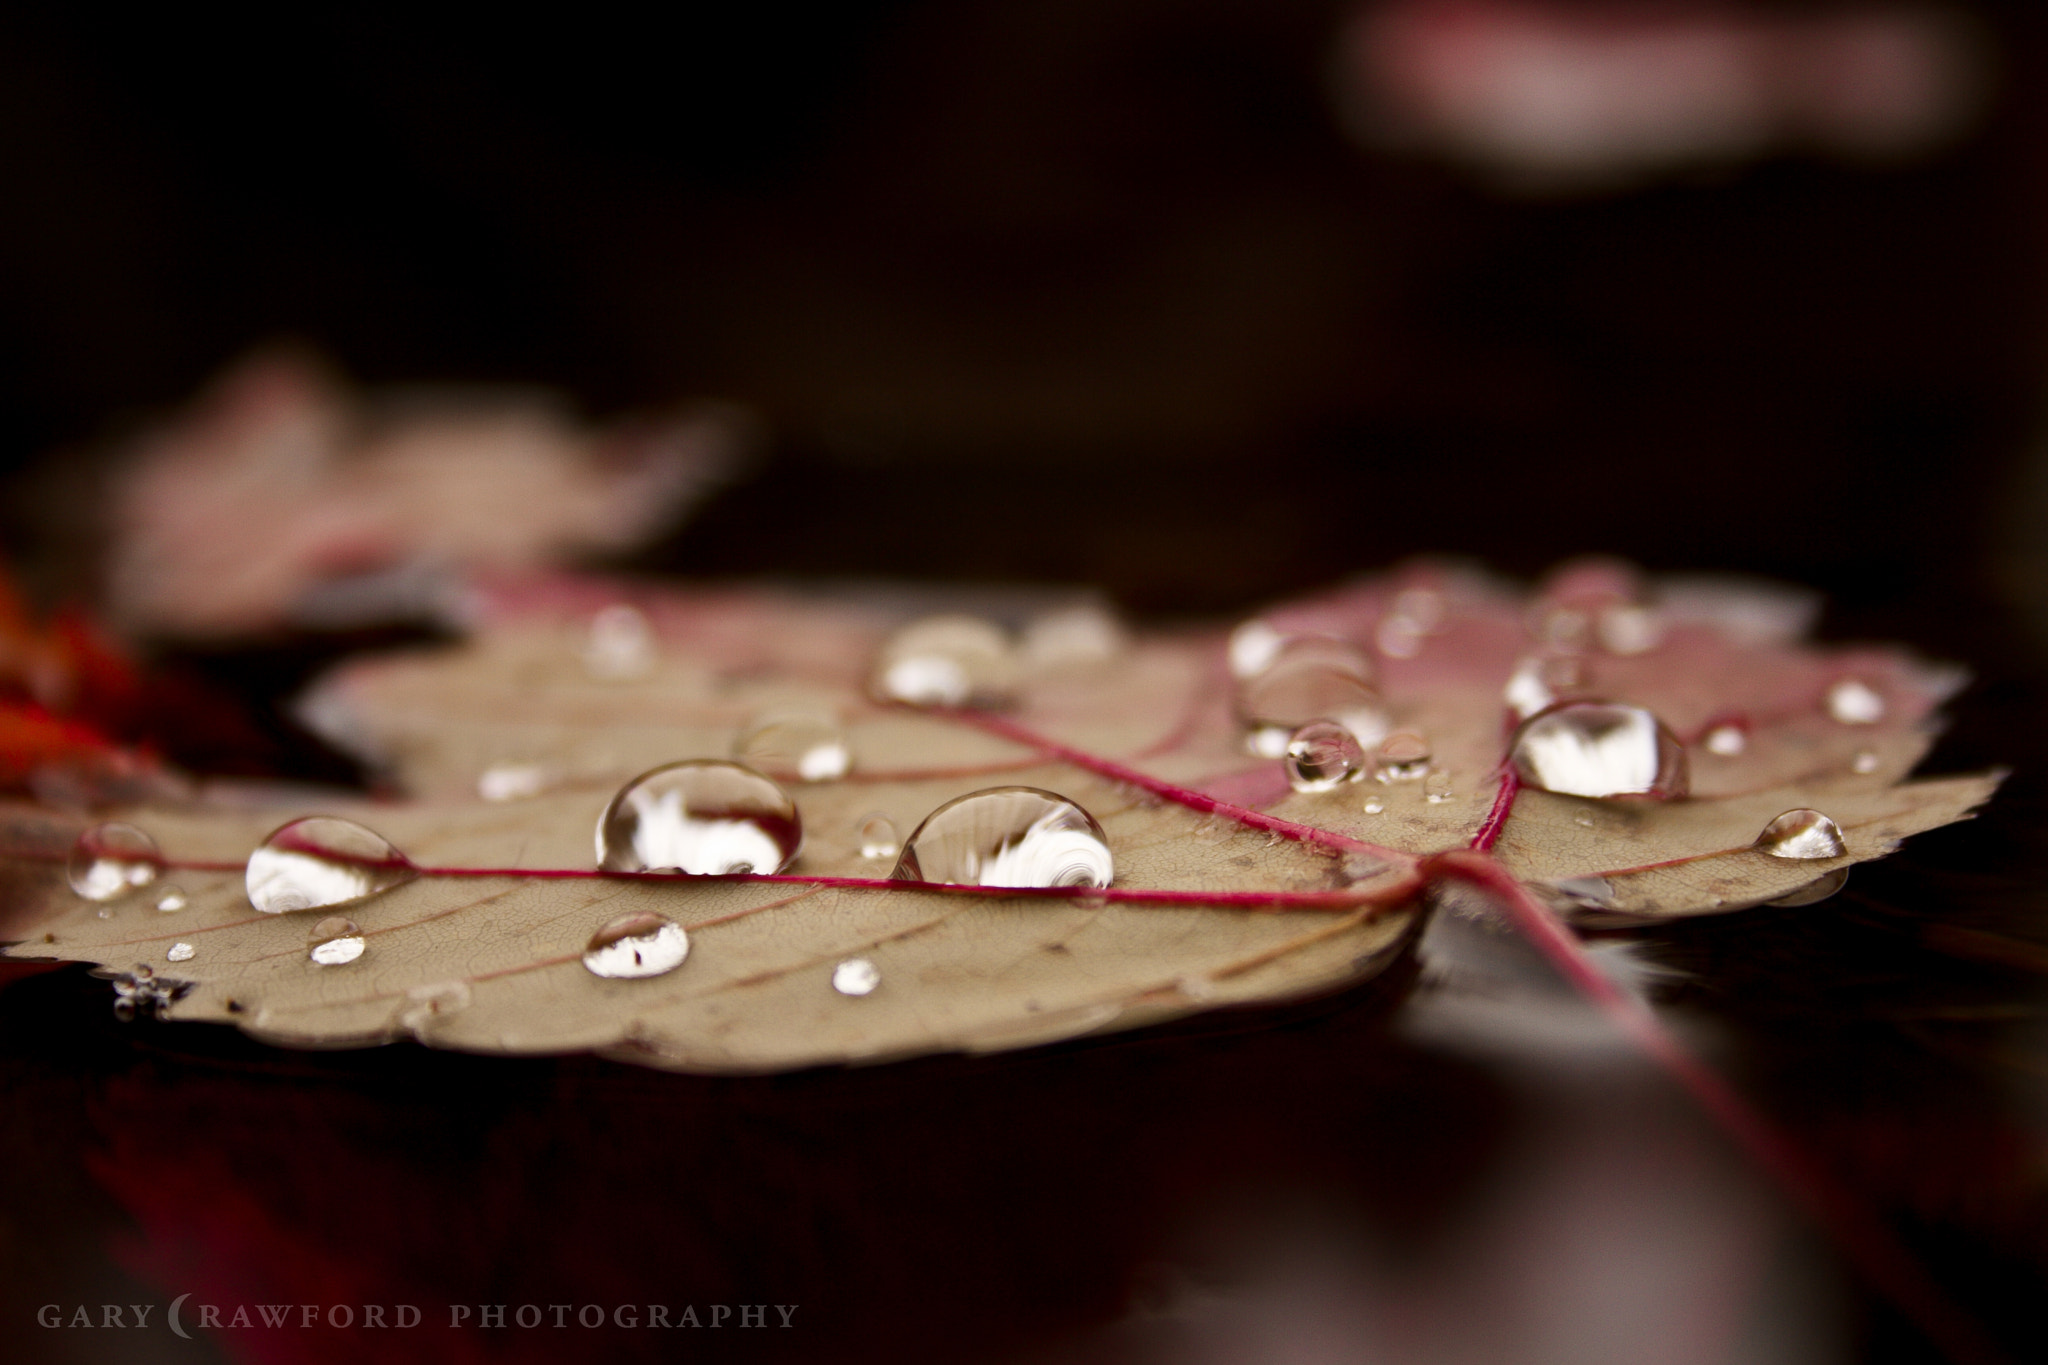 Photograph Fall and Raindrops by Gary Crawford on 500px